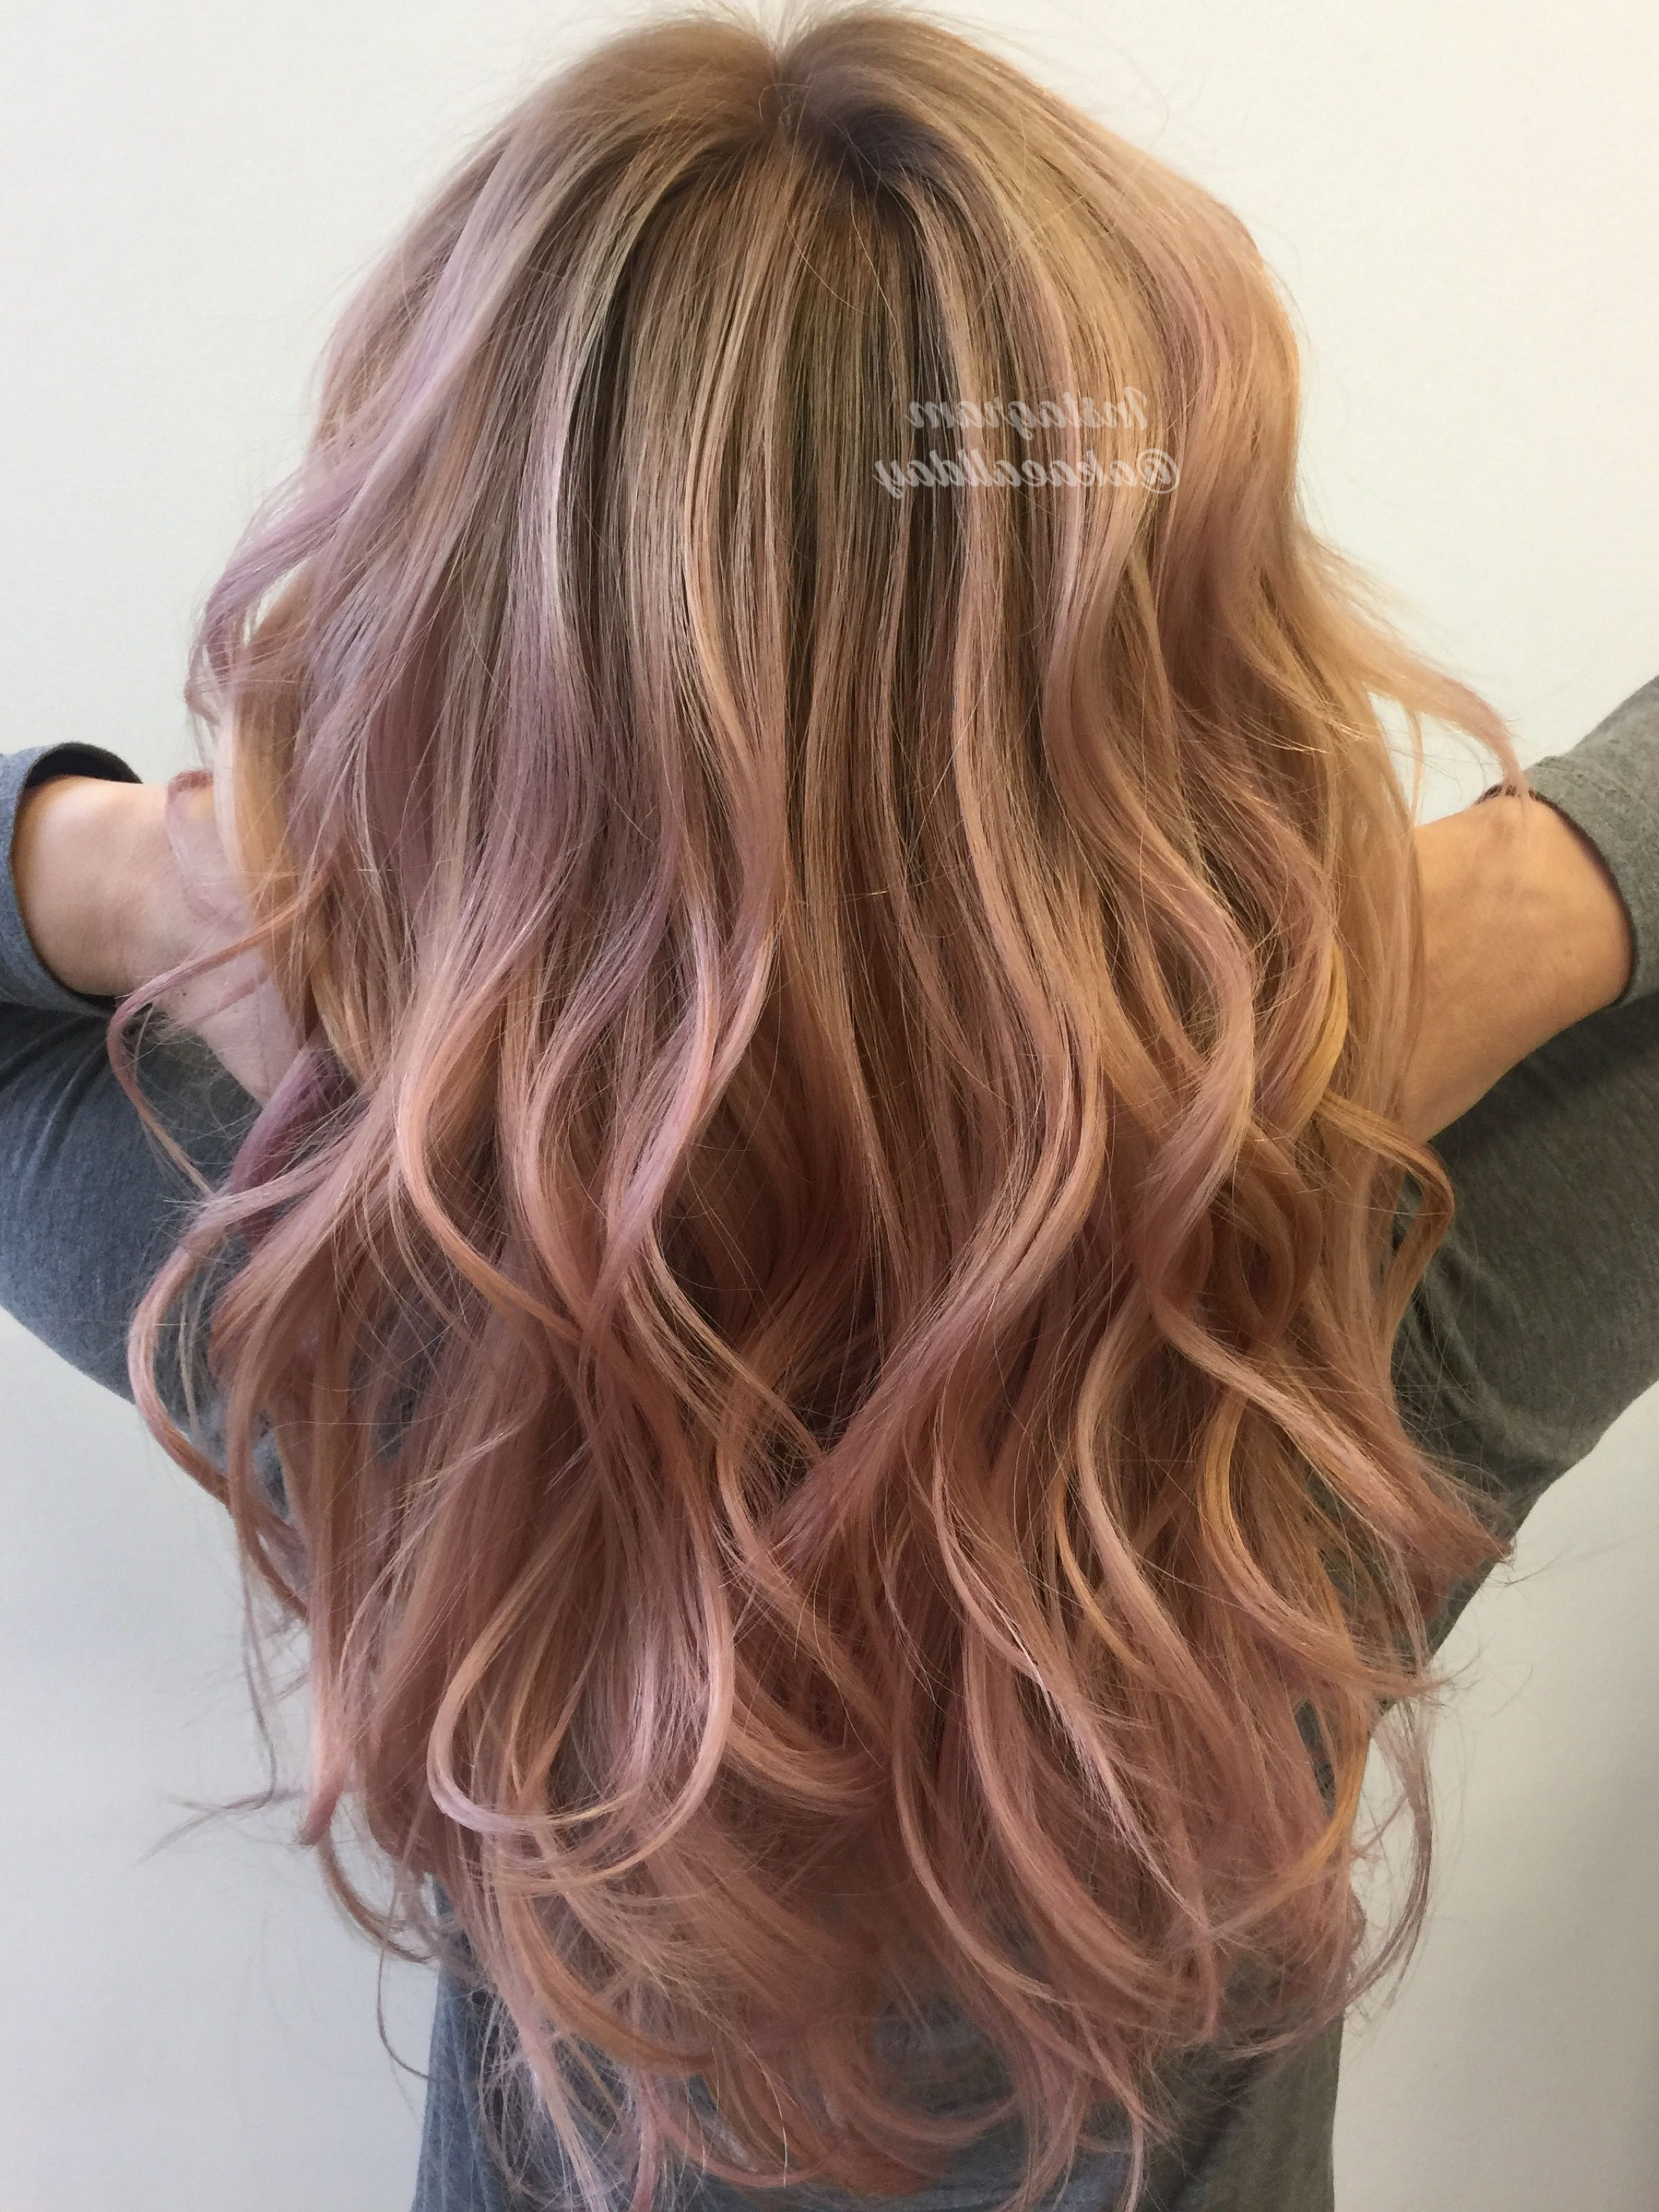 Best And Newest Pastel And Ash Pixie Hairstyles With Fused Layers In Rose Gold Pastel Balayage Blonde Ombré Layers Beach Waves (View 13 of 20)